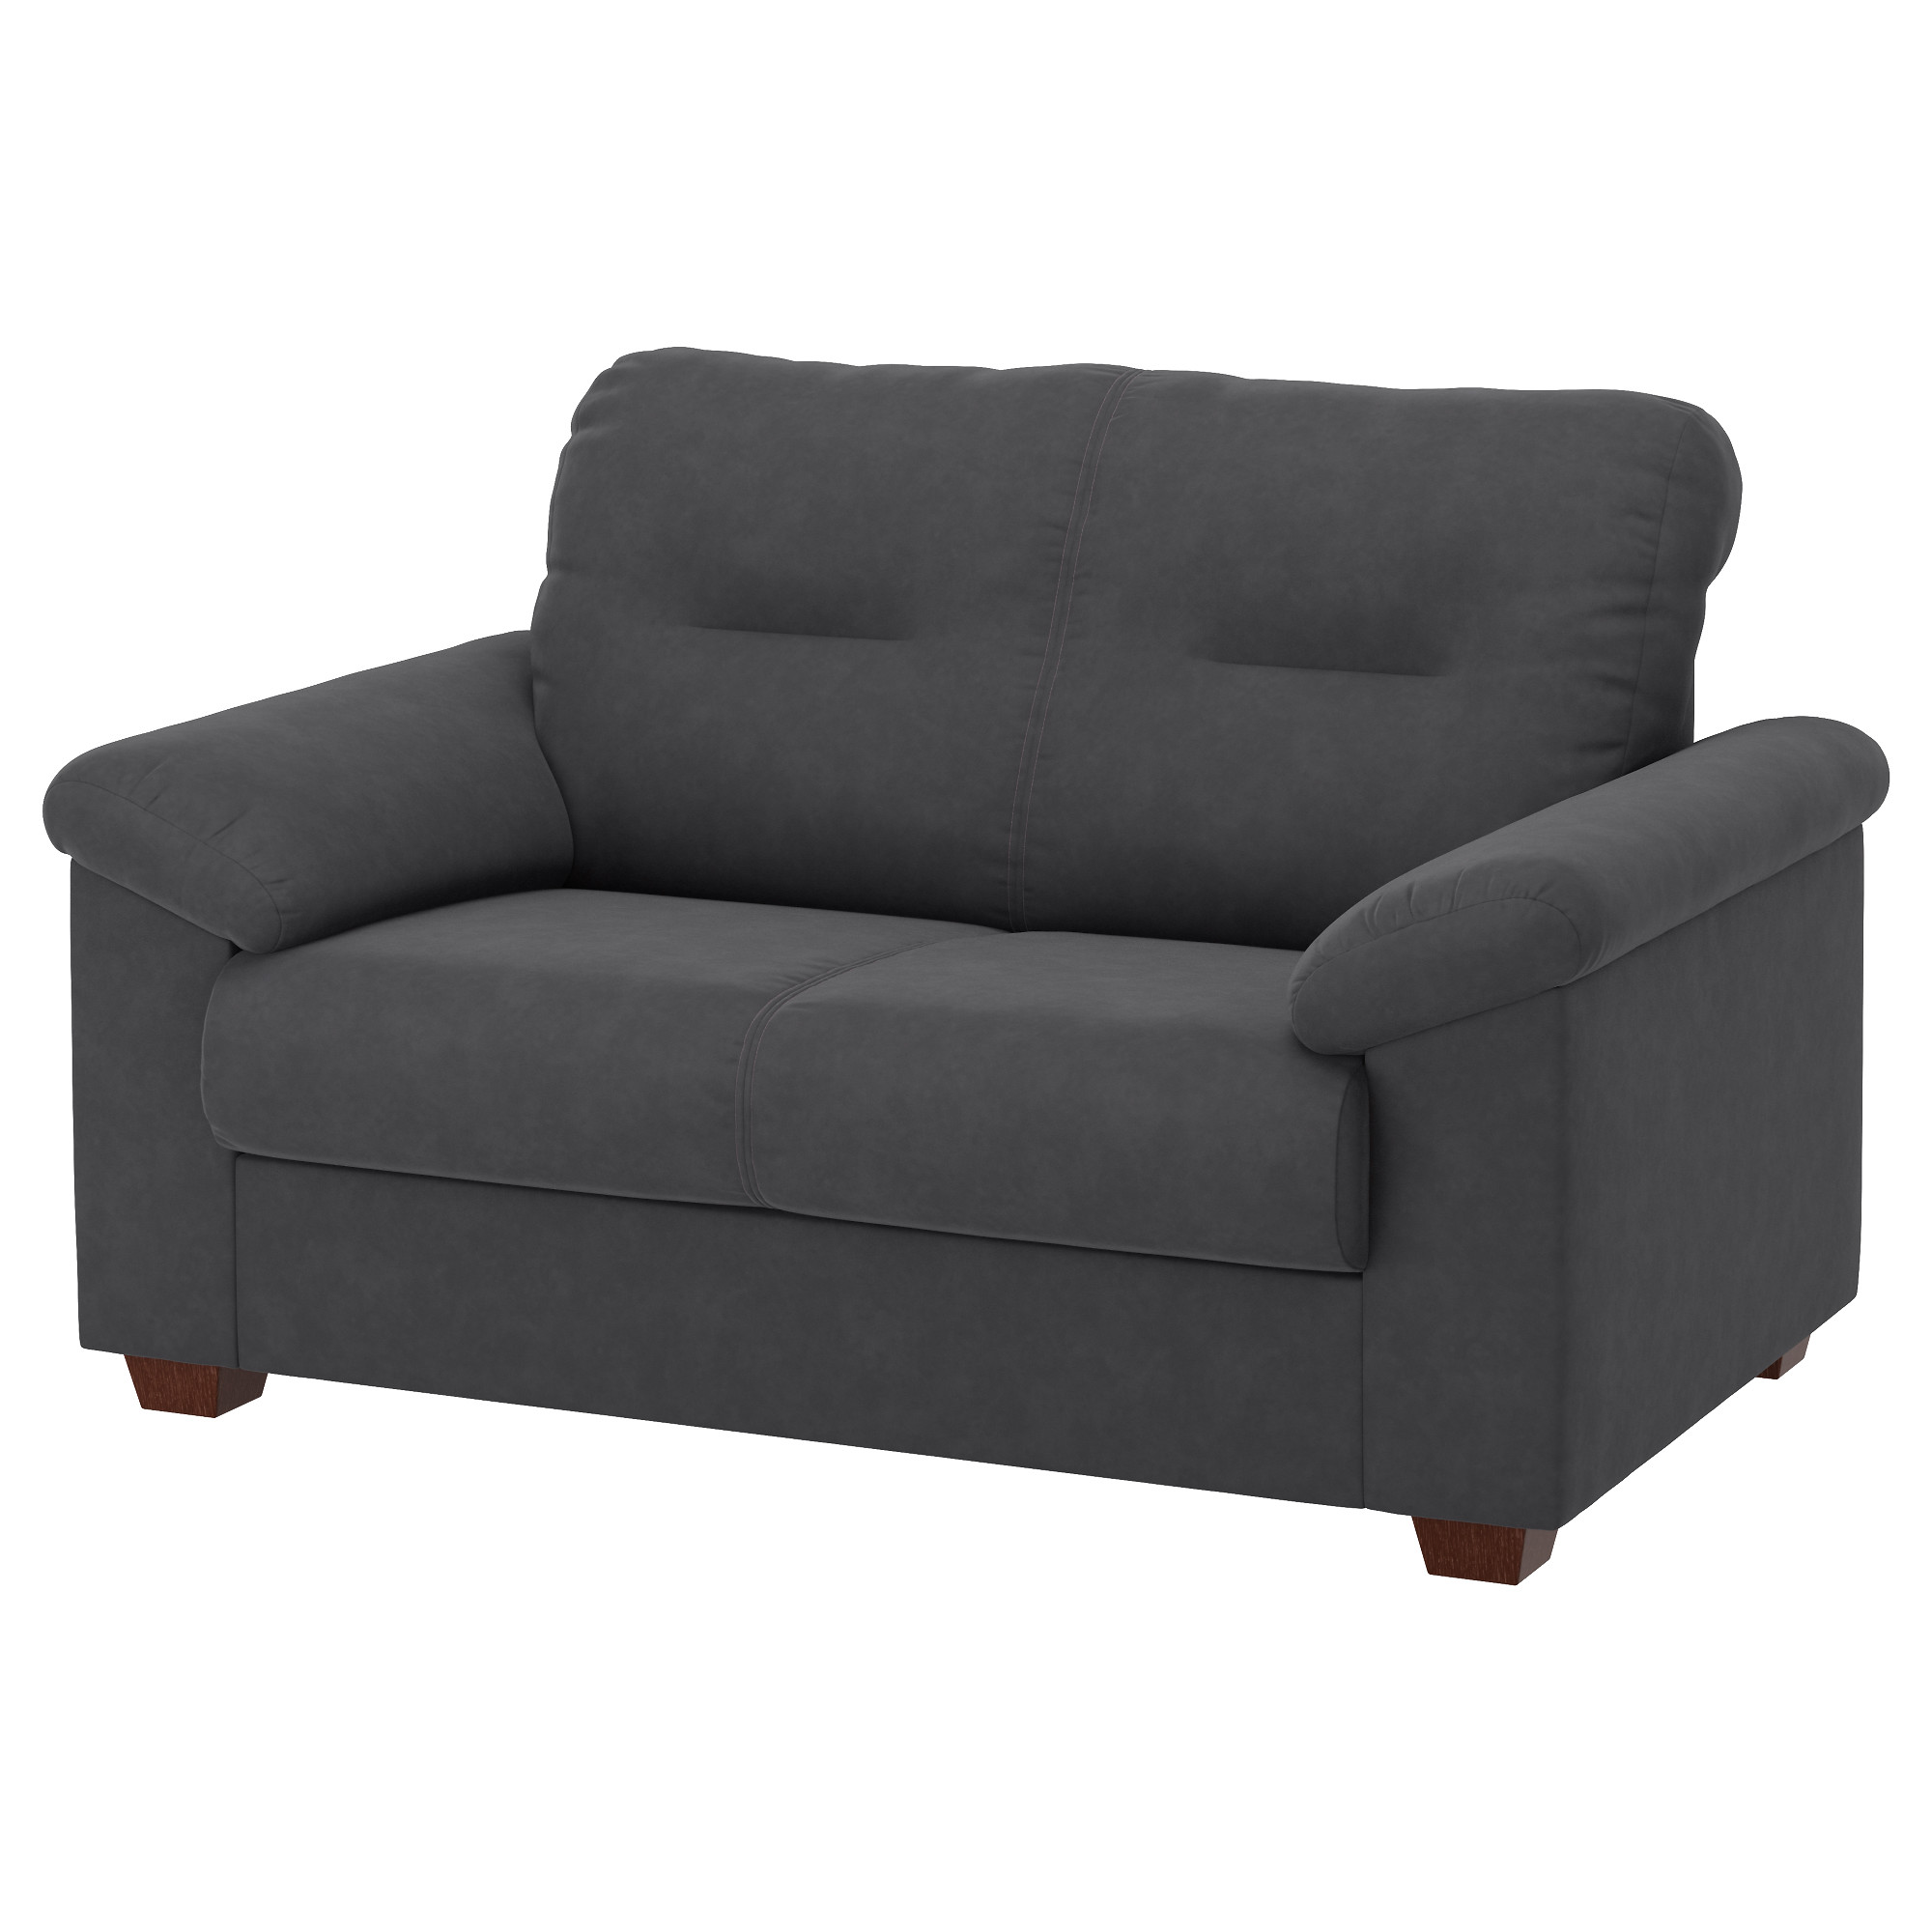 Sofas de ikea vilasund sofa bed with chaise longue - Sofa cama 2 plazas precios ...